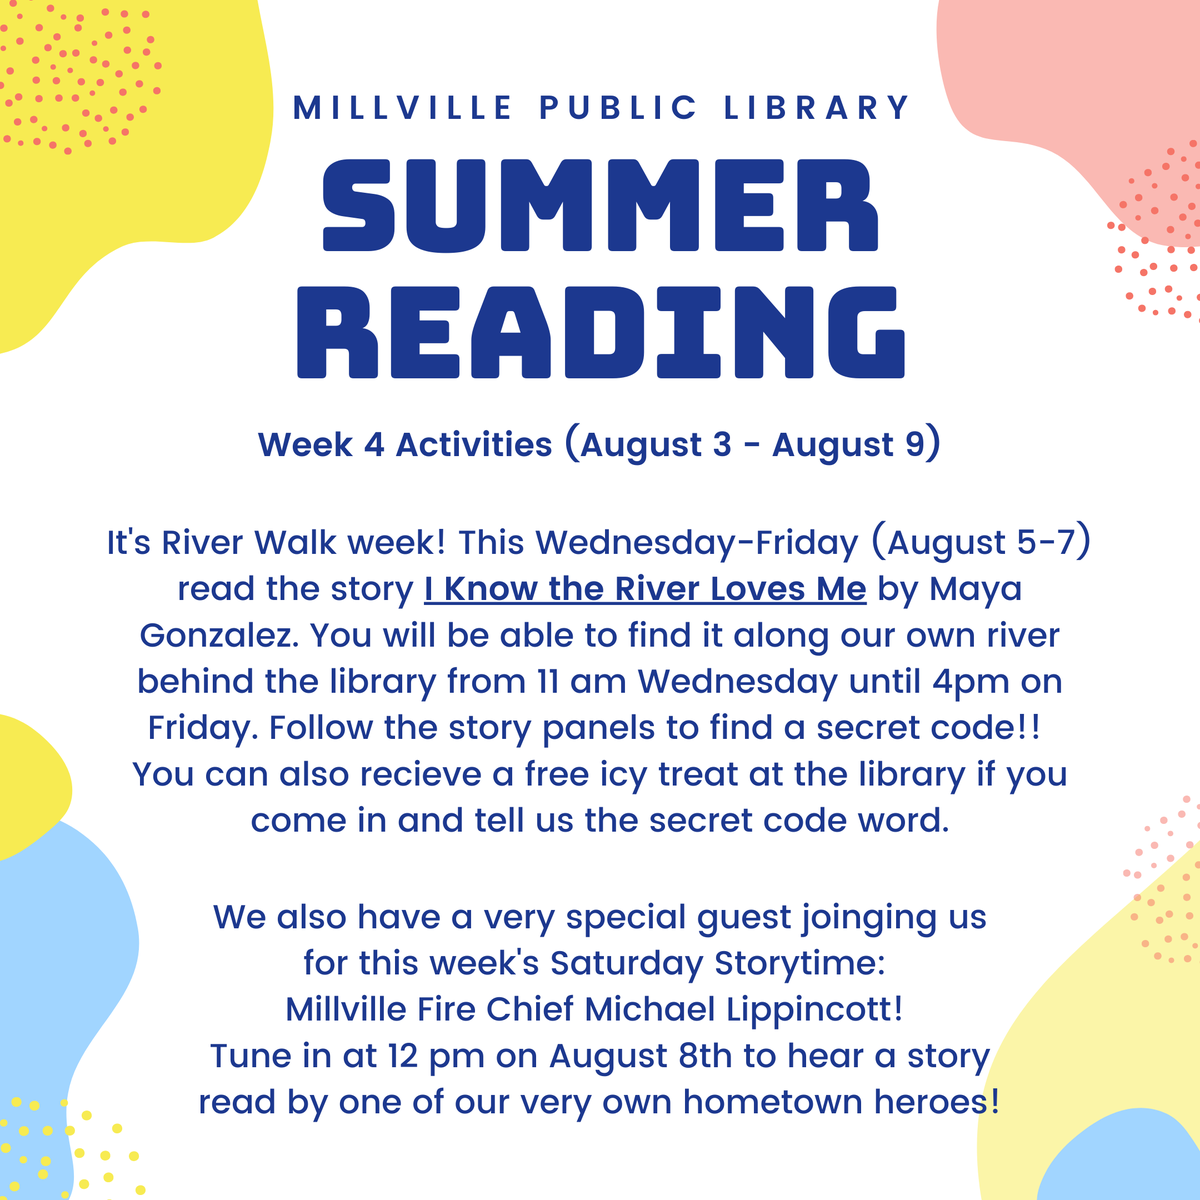 Check out this week's Summer Reading activities! Walk along the River Walk and read